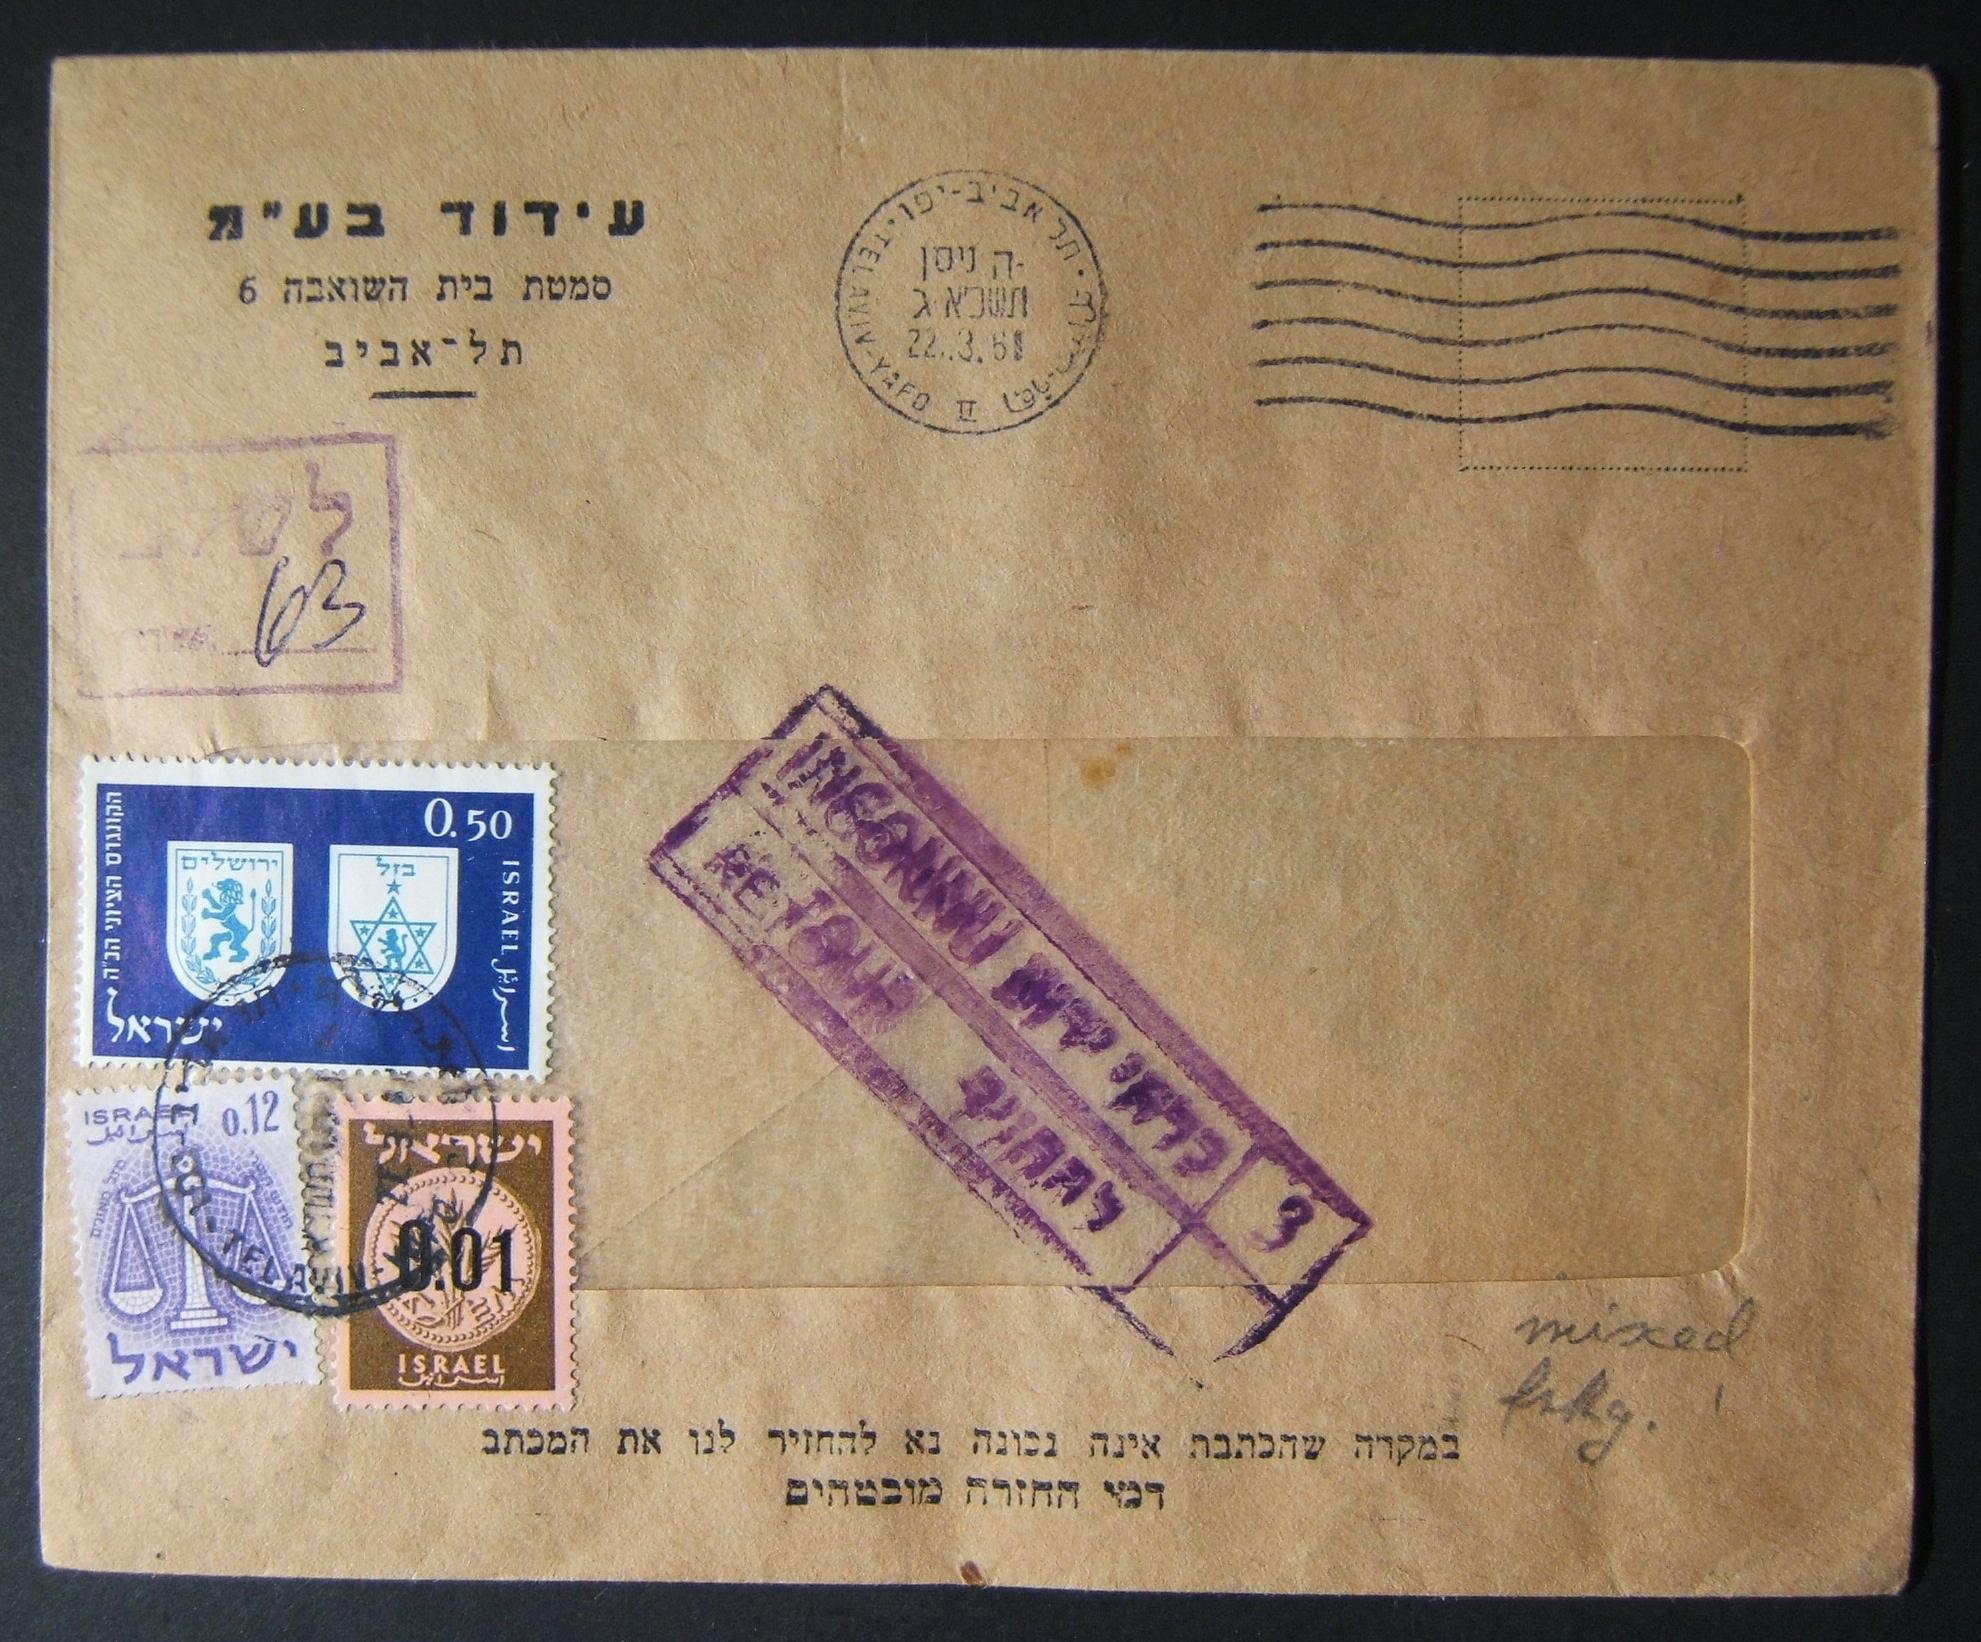 1961 domestic 'top of the pile' taxed franking: 22-3-61 printed matter commercial cover ex TLV branch of Idud Ltd. mailed unfranked and untaxed, with machine cancellation, but retu